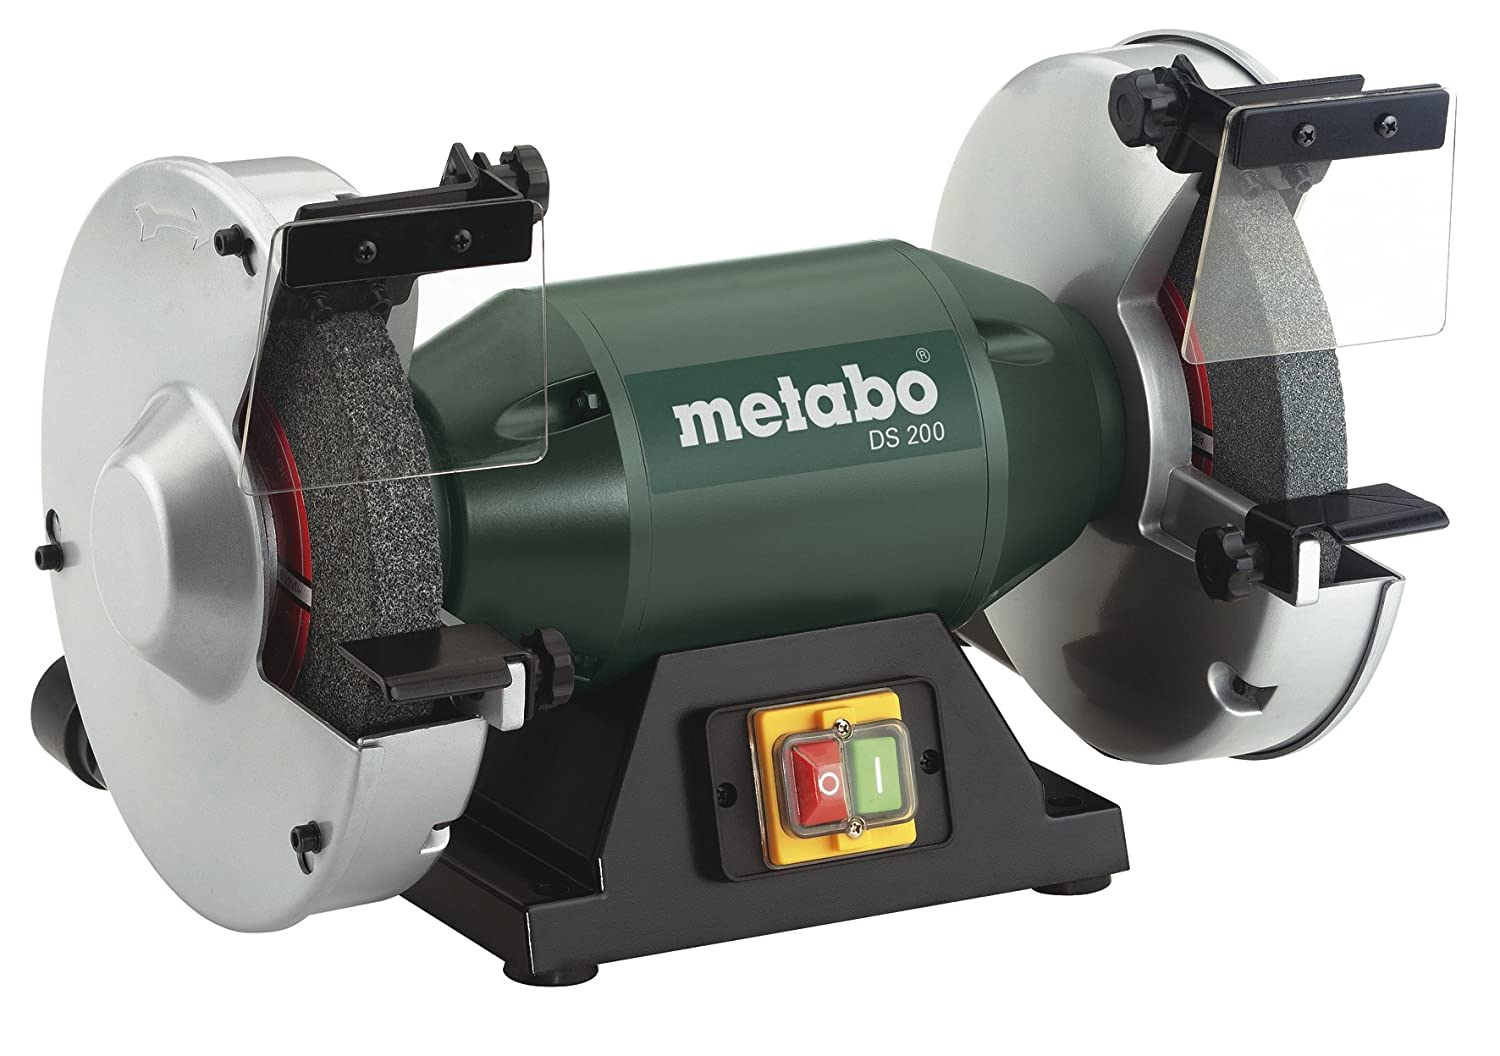 Top Metabo DS 200 8-Inch Bench Grinder - Power Bench Grinders - Amazon.com DF35